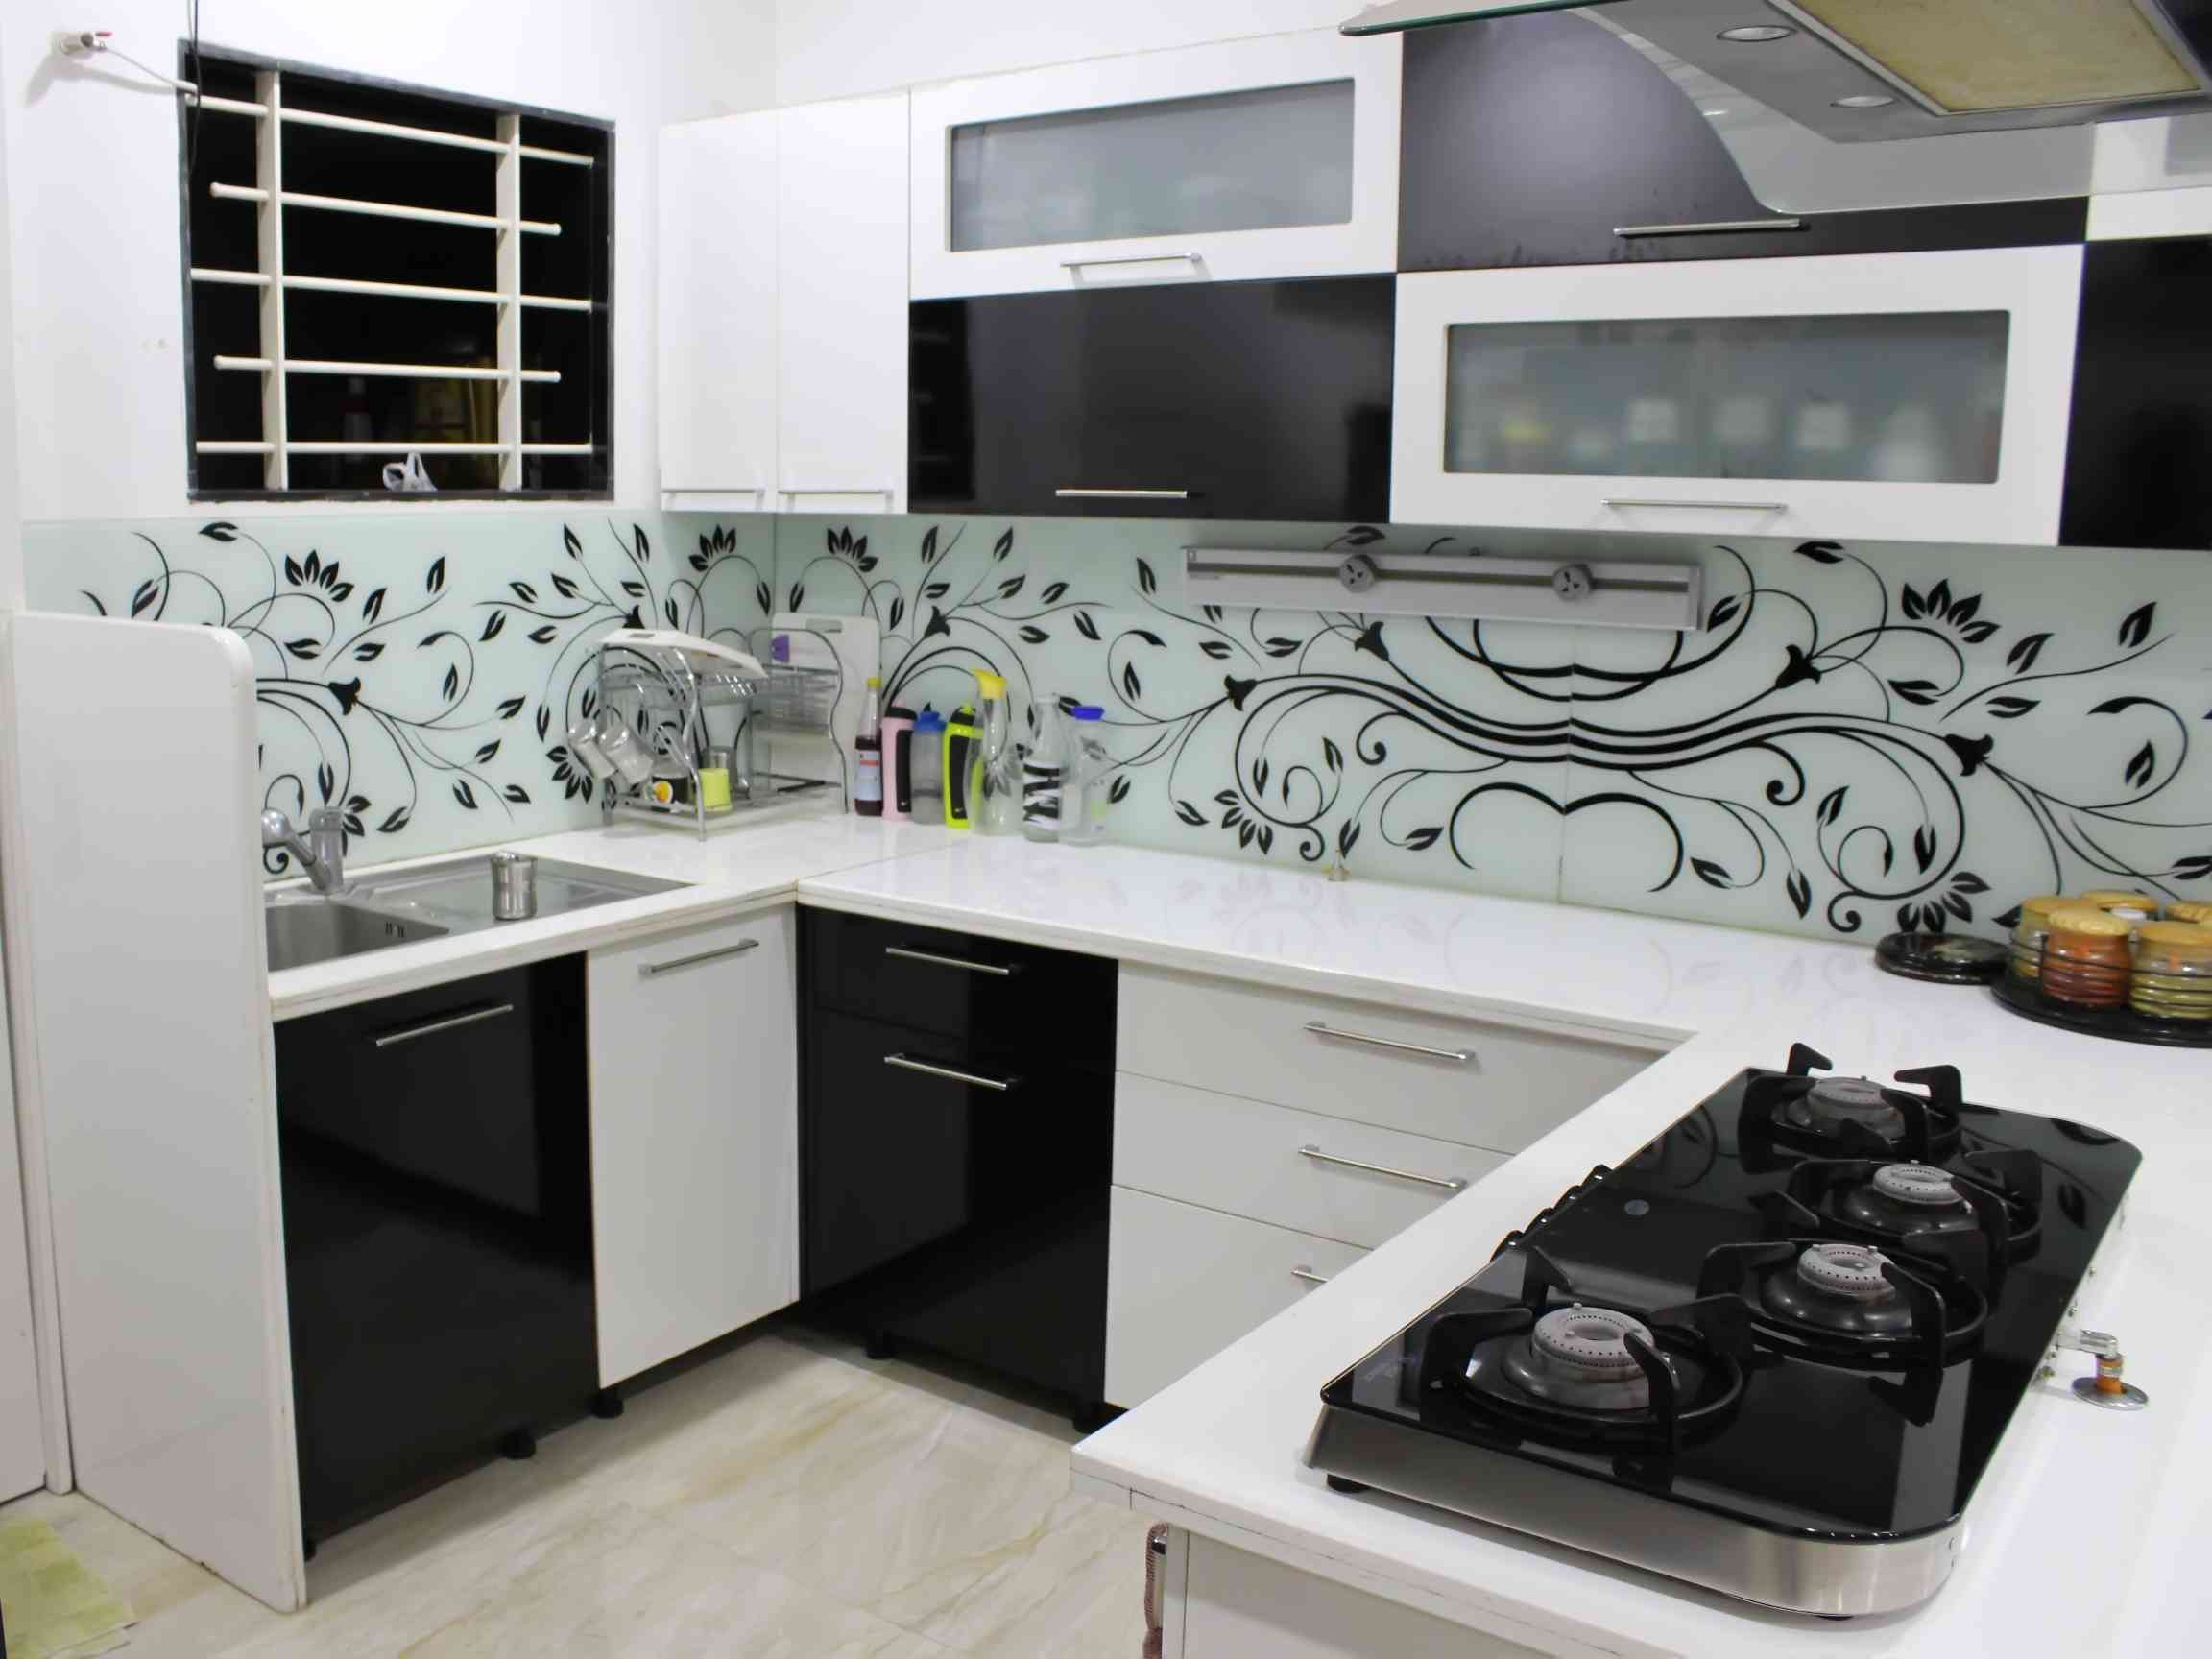 Indian style kitchen design images indian style kitchen for Different style of kitchen designs